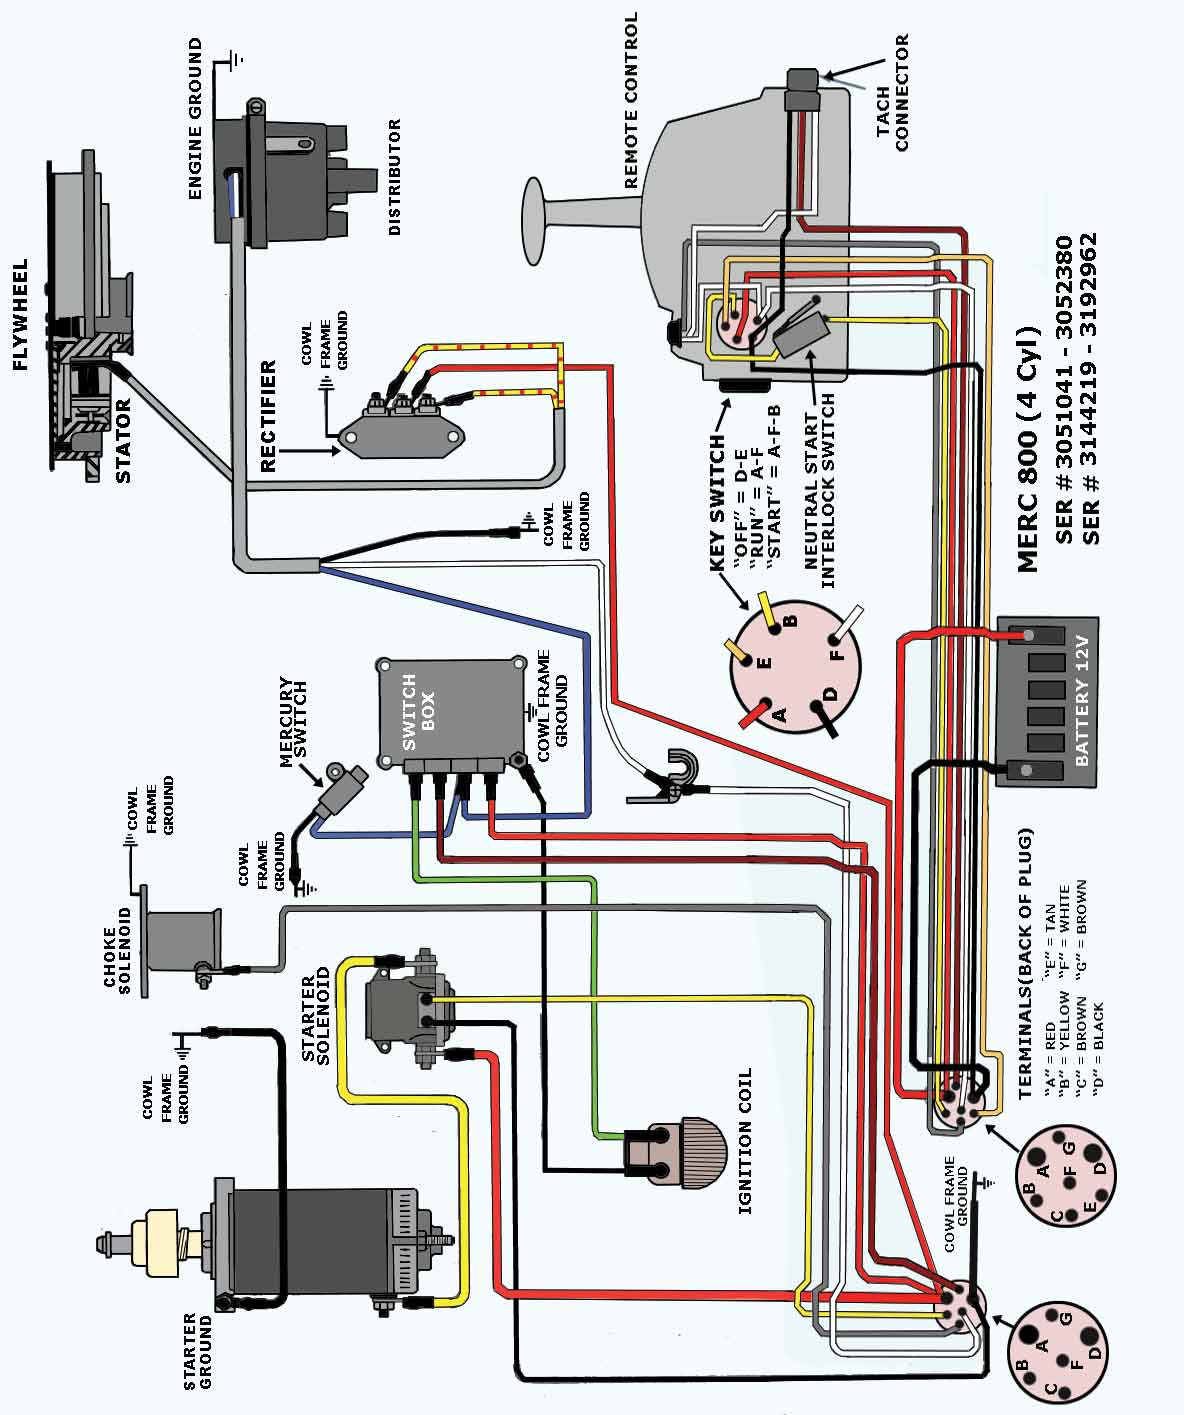 Magnificent Mercury Outboard Ignition Switch Wiring Diagram Wiring Diagram M6 Letkol Mohammedshrine Wiring Cloud Letkolmohammedshrineorg